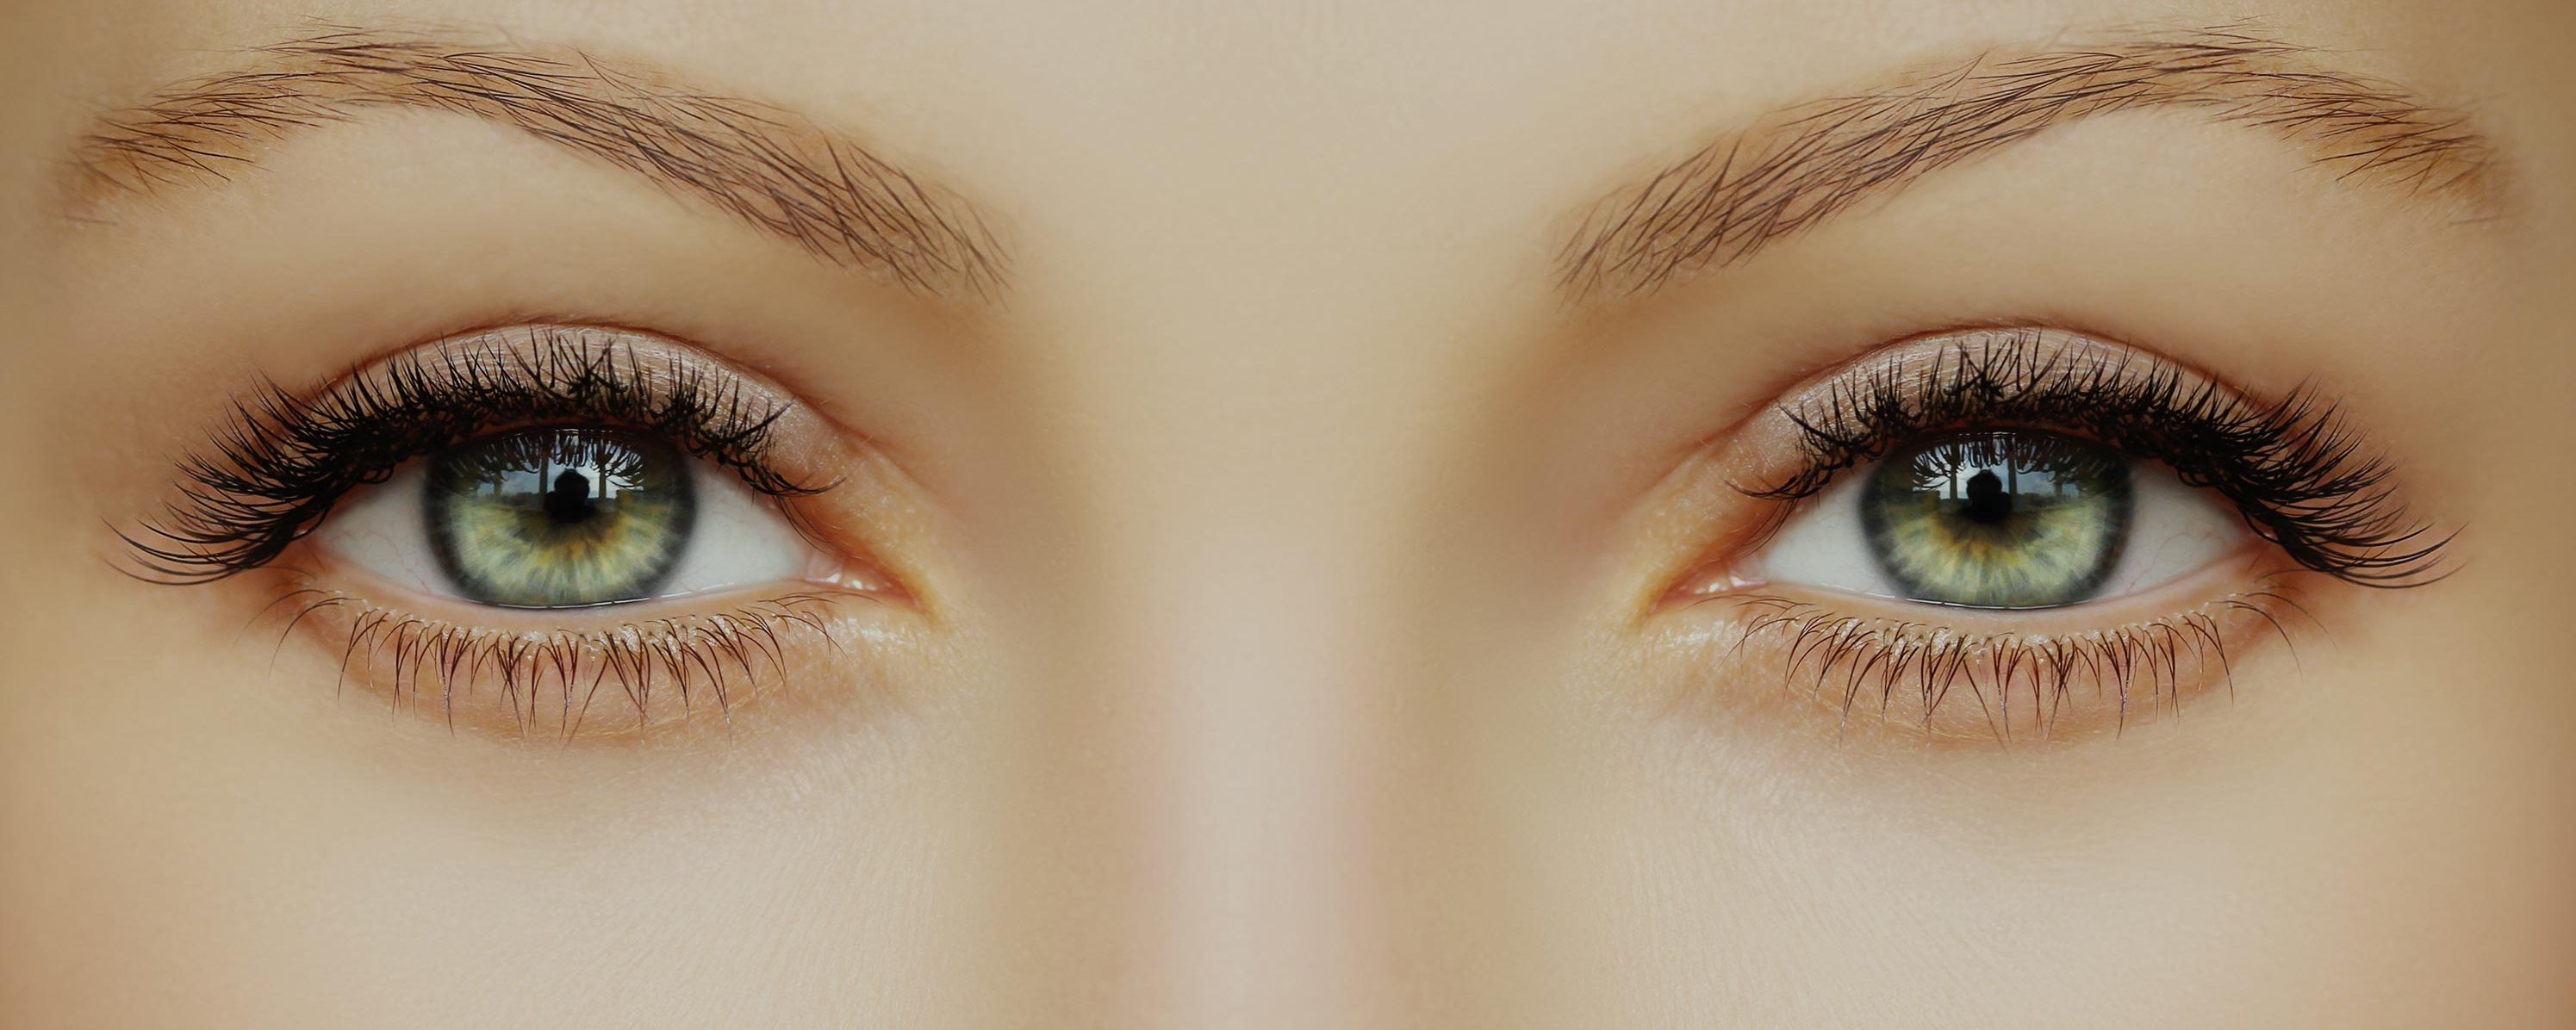 Beauty Treatments for a lady with beautiful eyes